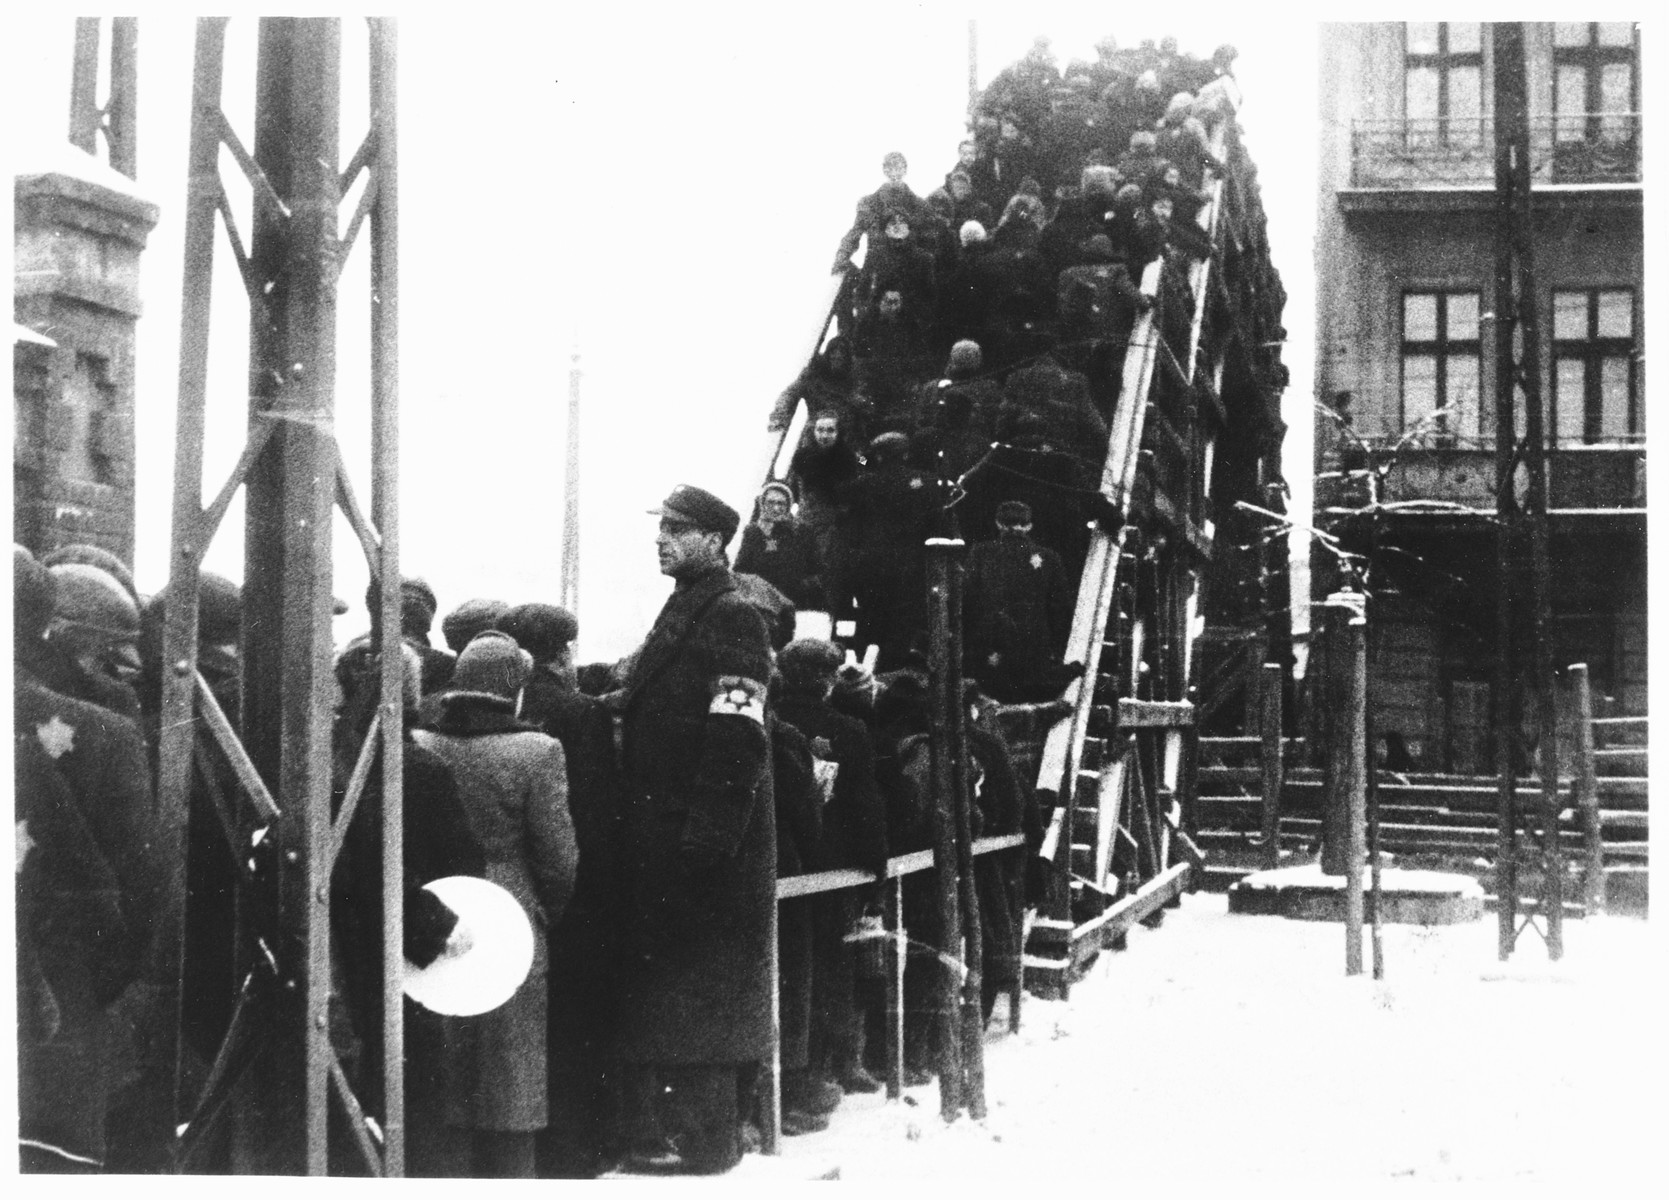 A Jewish policeman stands guard while Lodz ghetto residents wait in line to cross one of the pedestrian bridges.